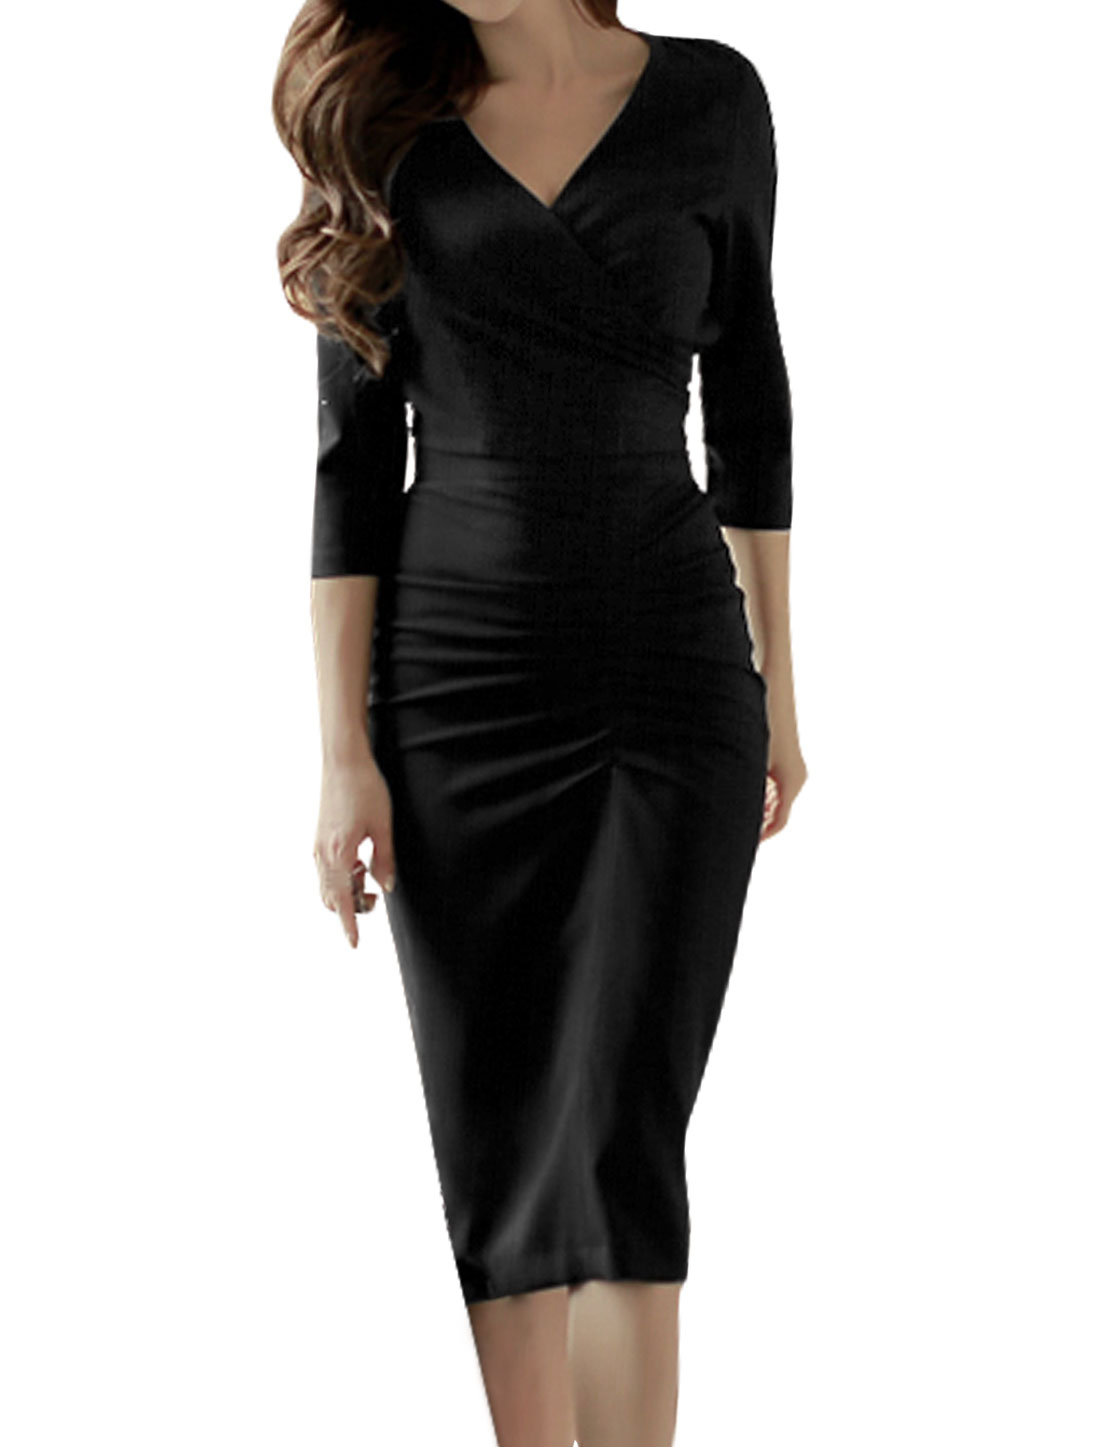 Women Crossover V Neck Crop Top w Shirred Midi Skirt Sets Black S